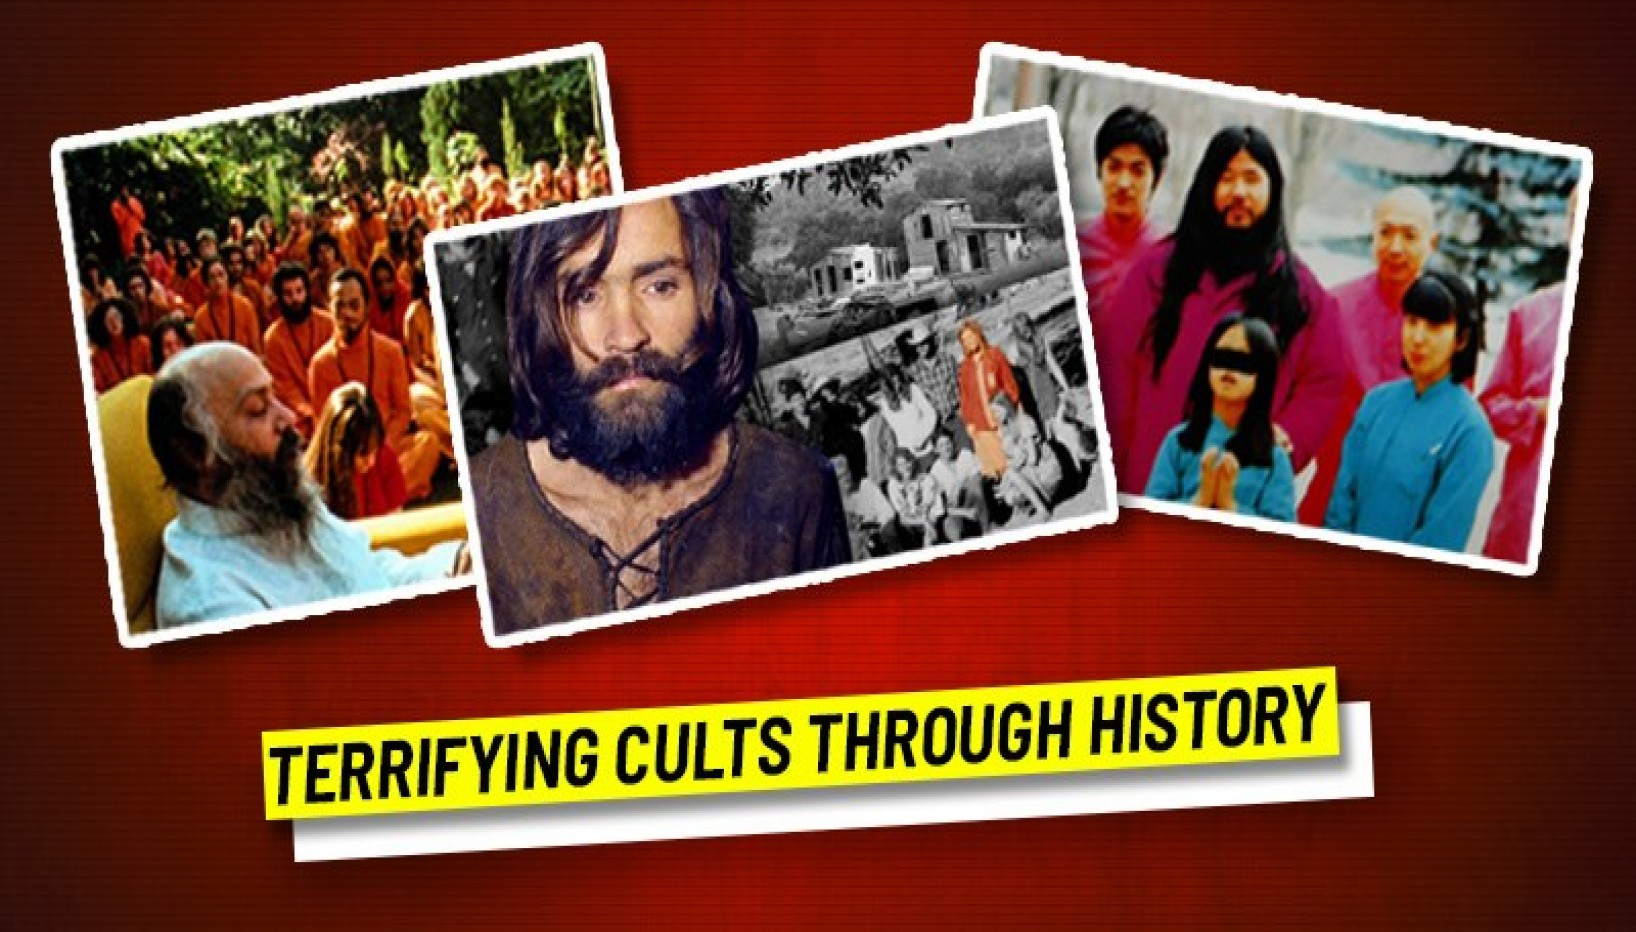 7 Terrifying Cults Whose Stories Will Chill You To The Bone